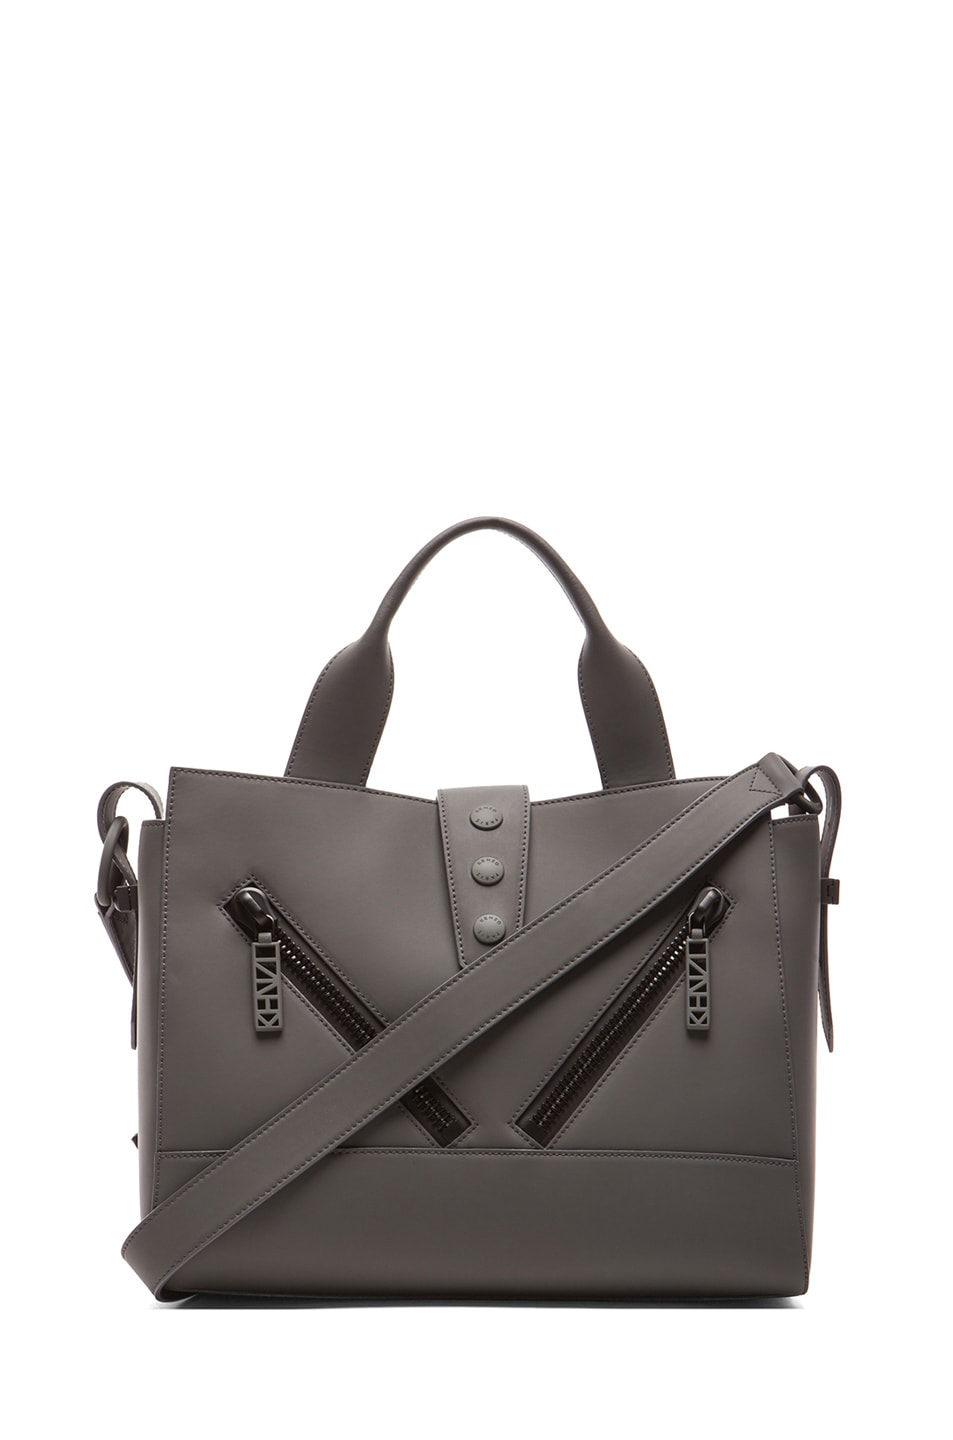 07ab146f8c Image 1 of Kenzo Medium Kalifornia Bag in Anthracite